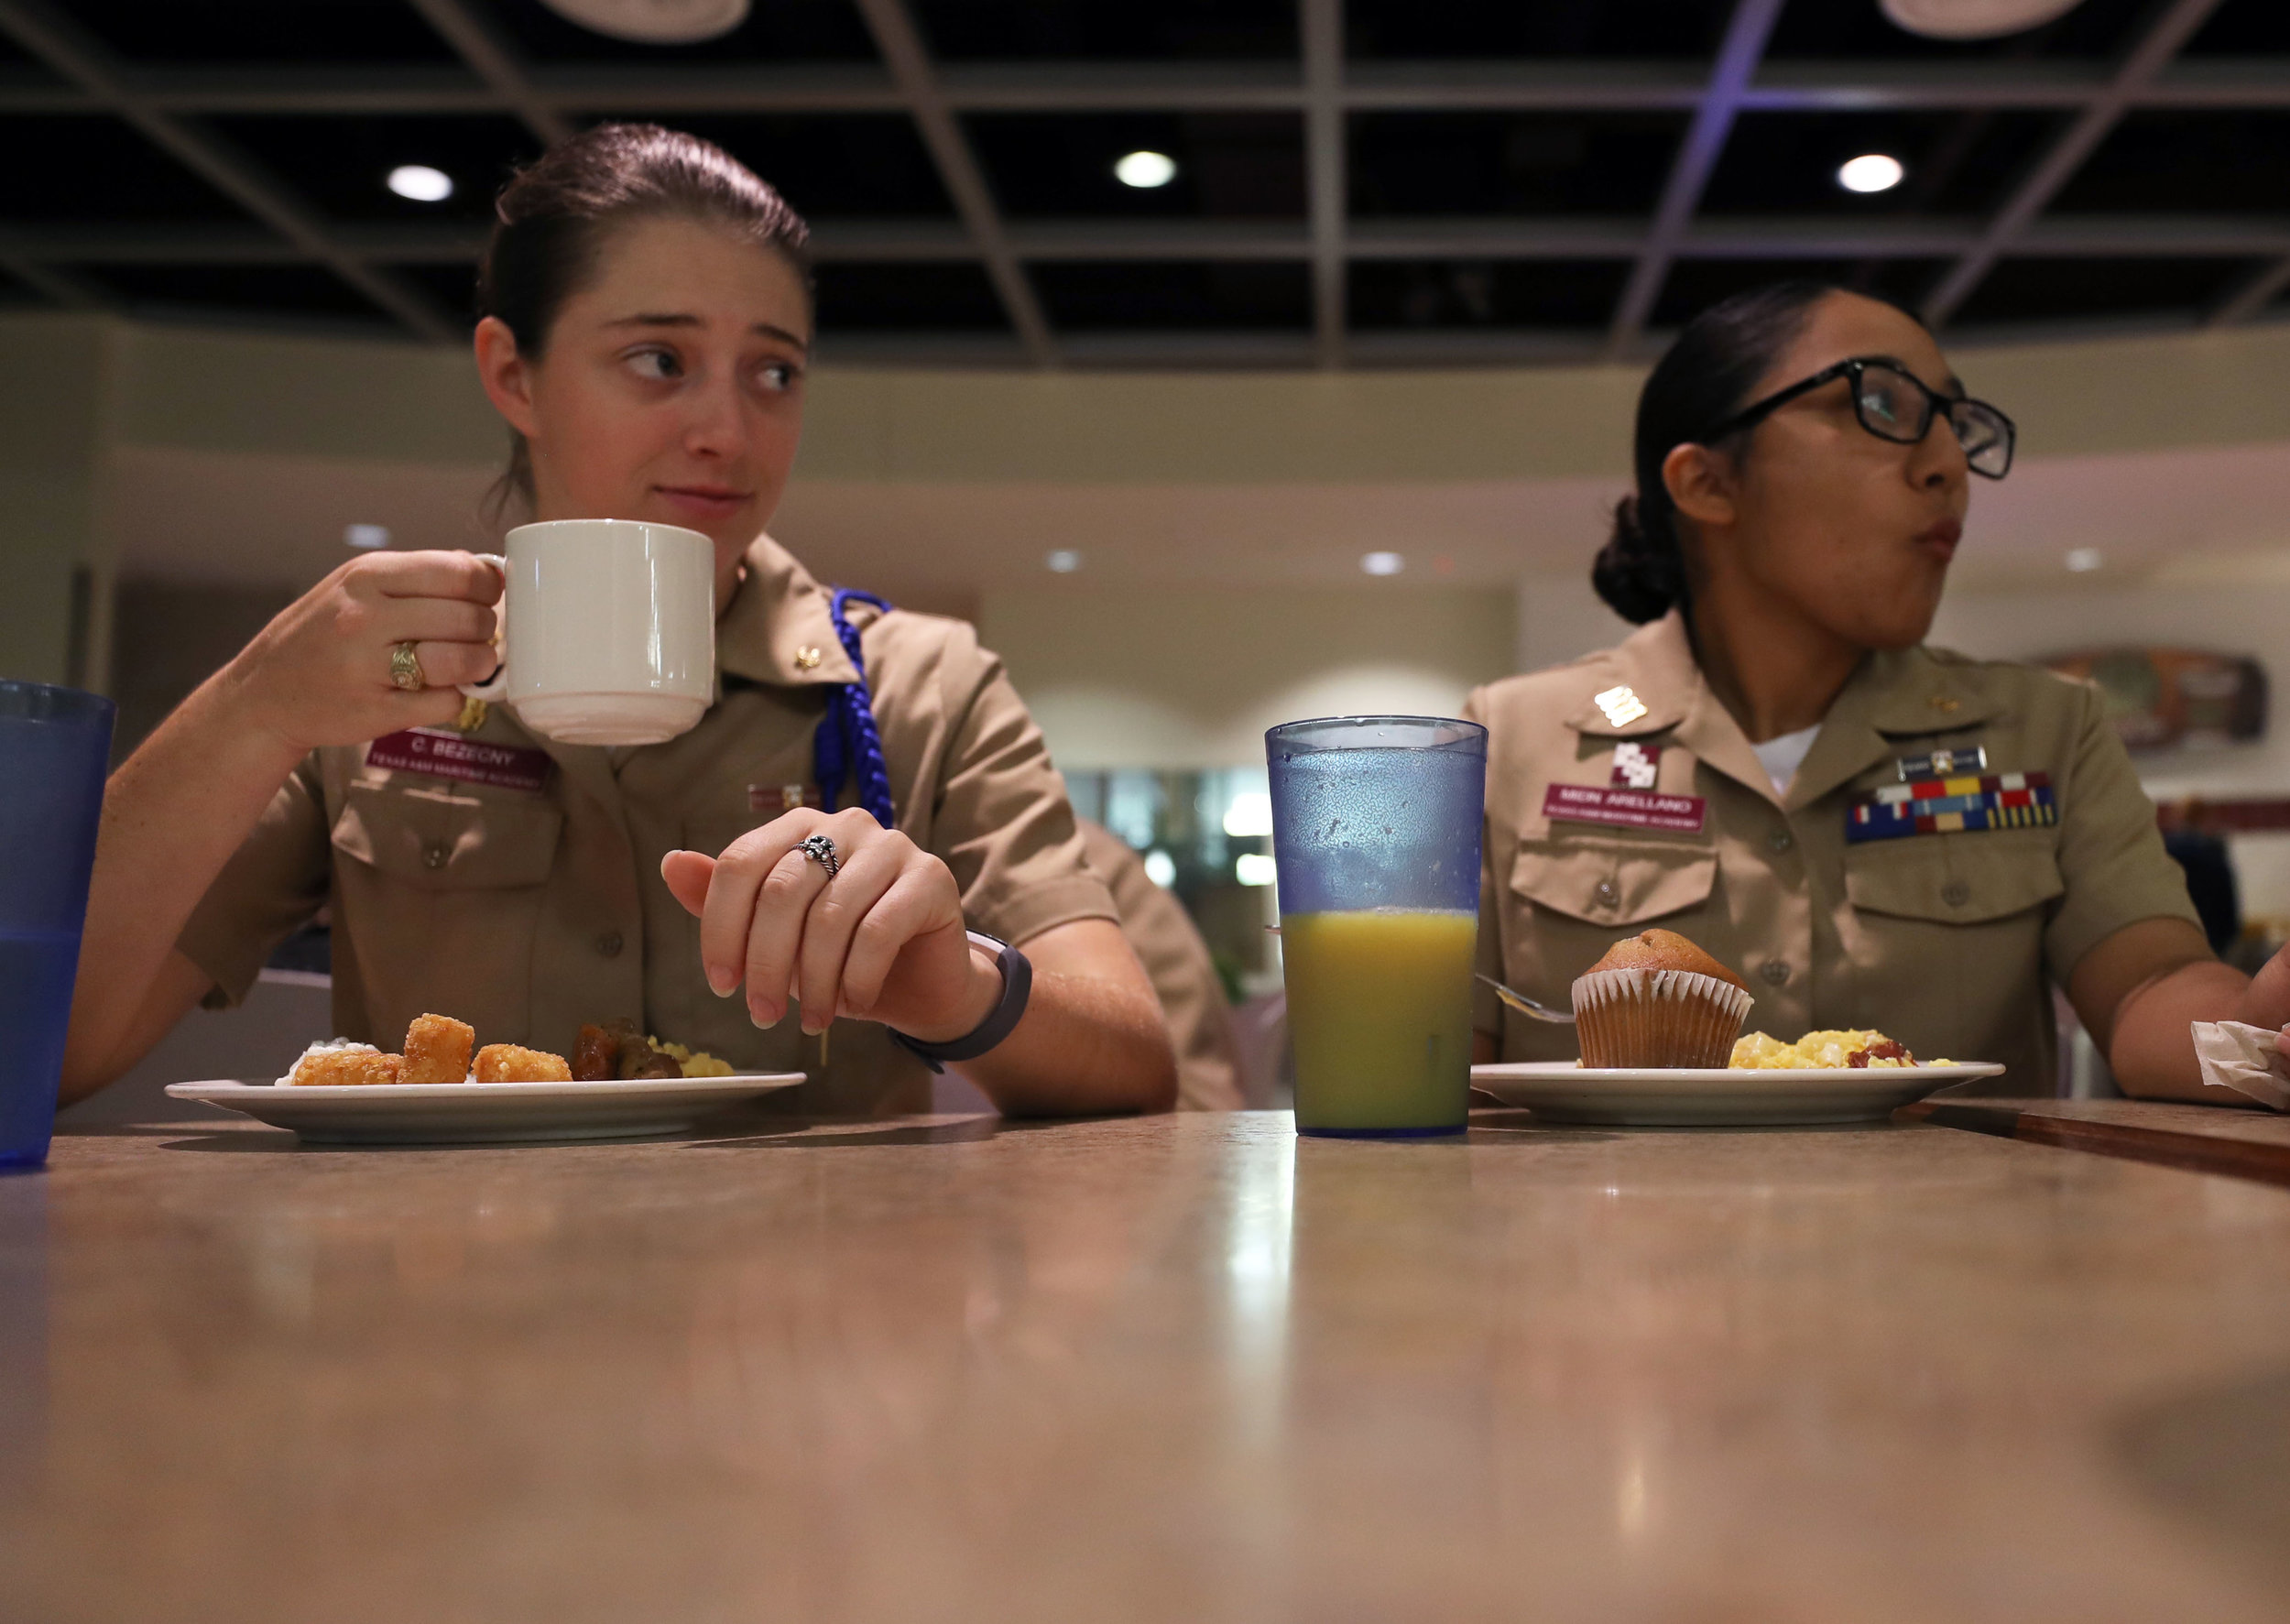 "Chief of Staff Caitlin Bezecny and Cadet Rose Arellano eat breakfast together at a dining hall on Wednesday, Nov. 15, 2017. Bezecny and Arellano met in the corps of cadets and have thrived in their leadership positions. According to Bezecny, a good GPA and a willingness to work hard are all one needs to have a leadership position. ""Everyone has a chance, but it's up to you to pursue those positions."""